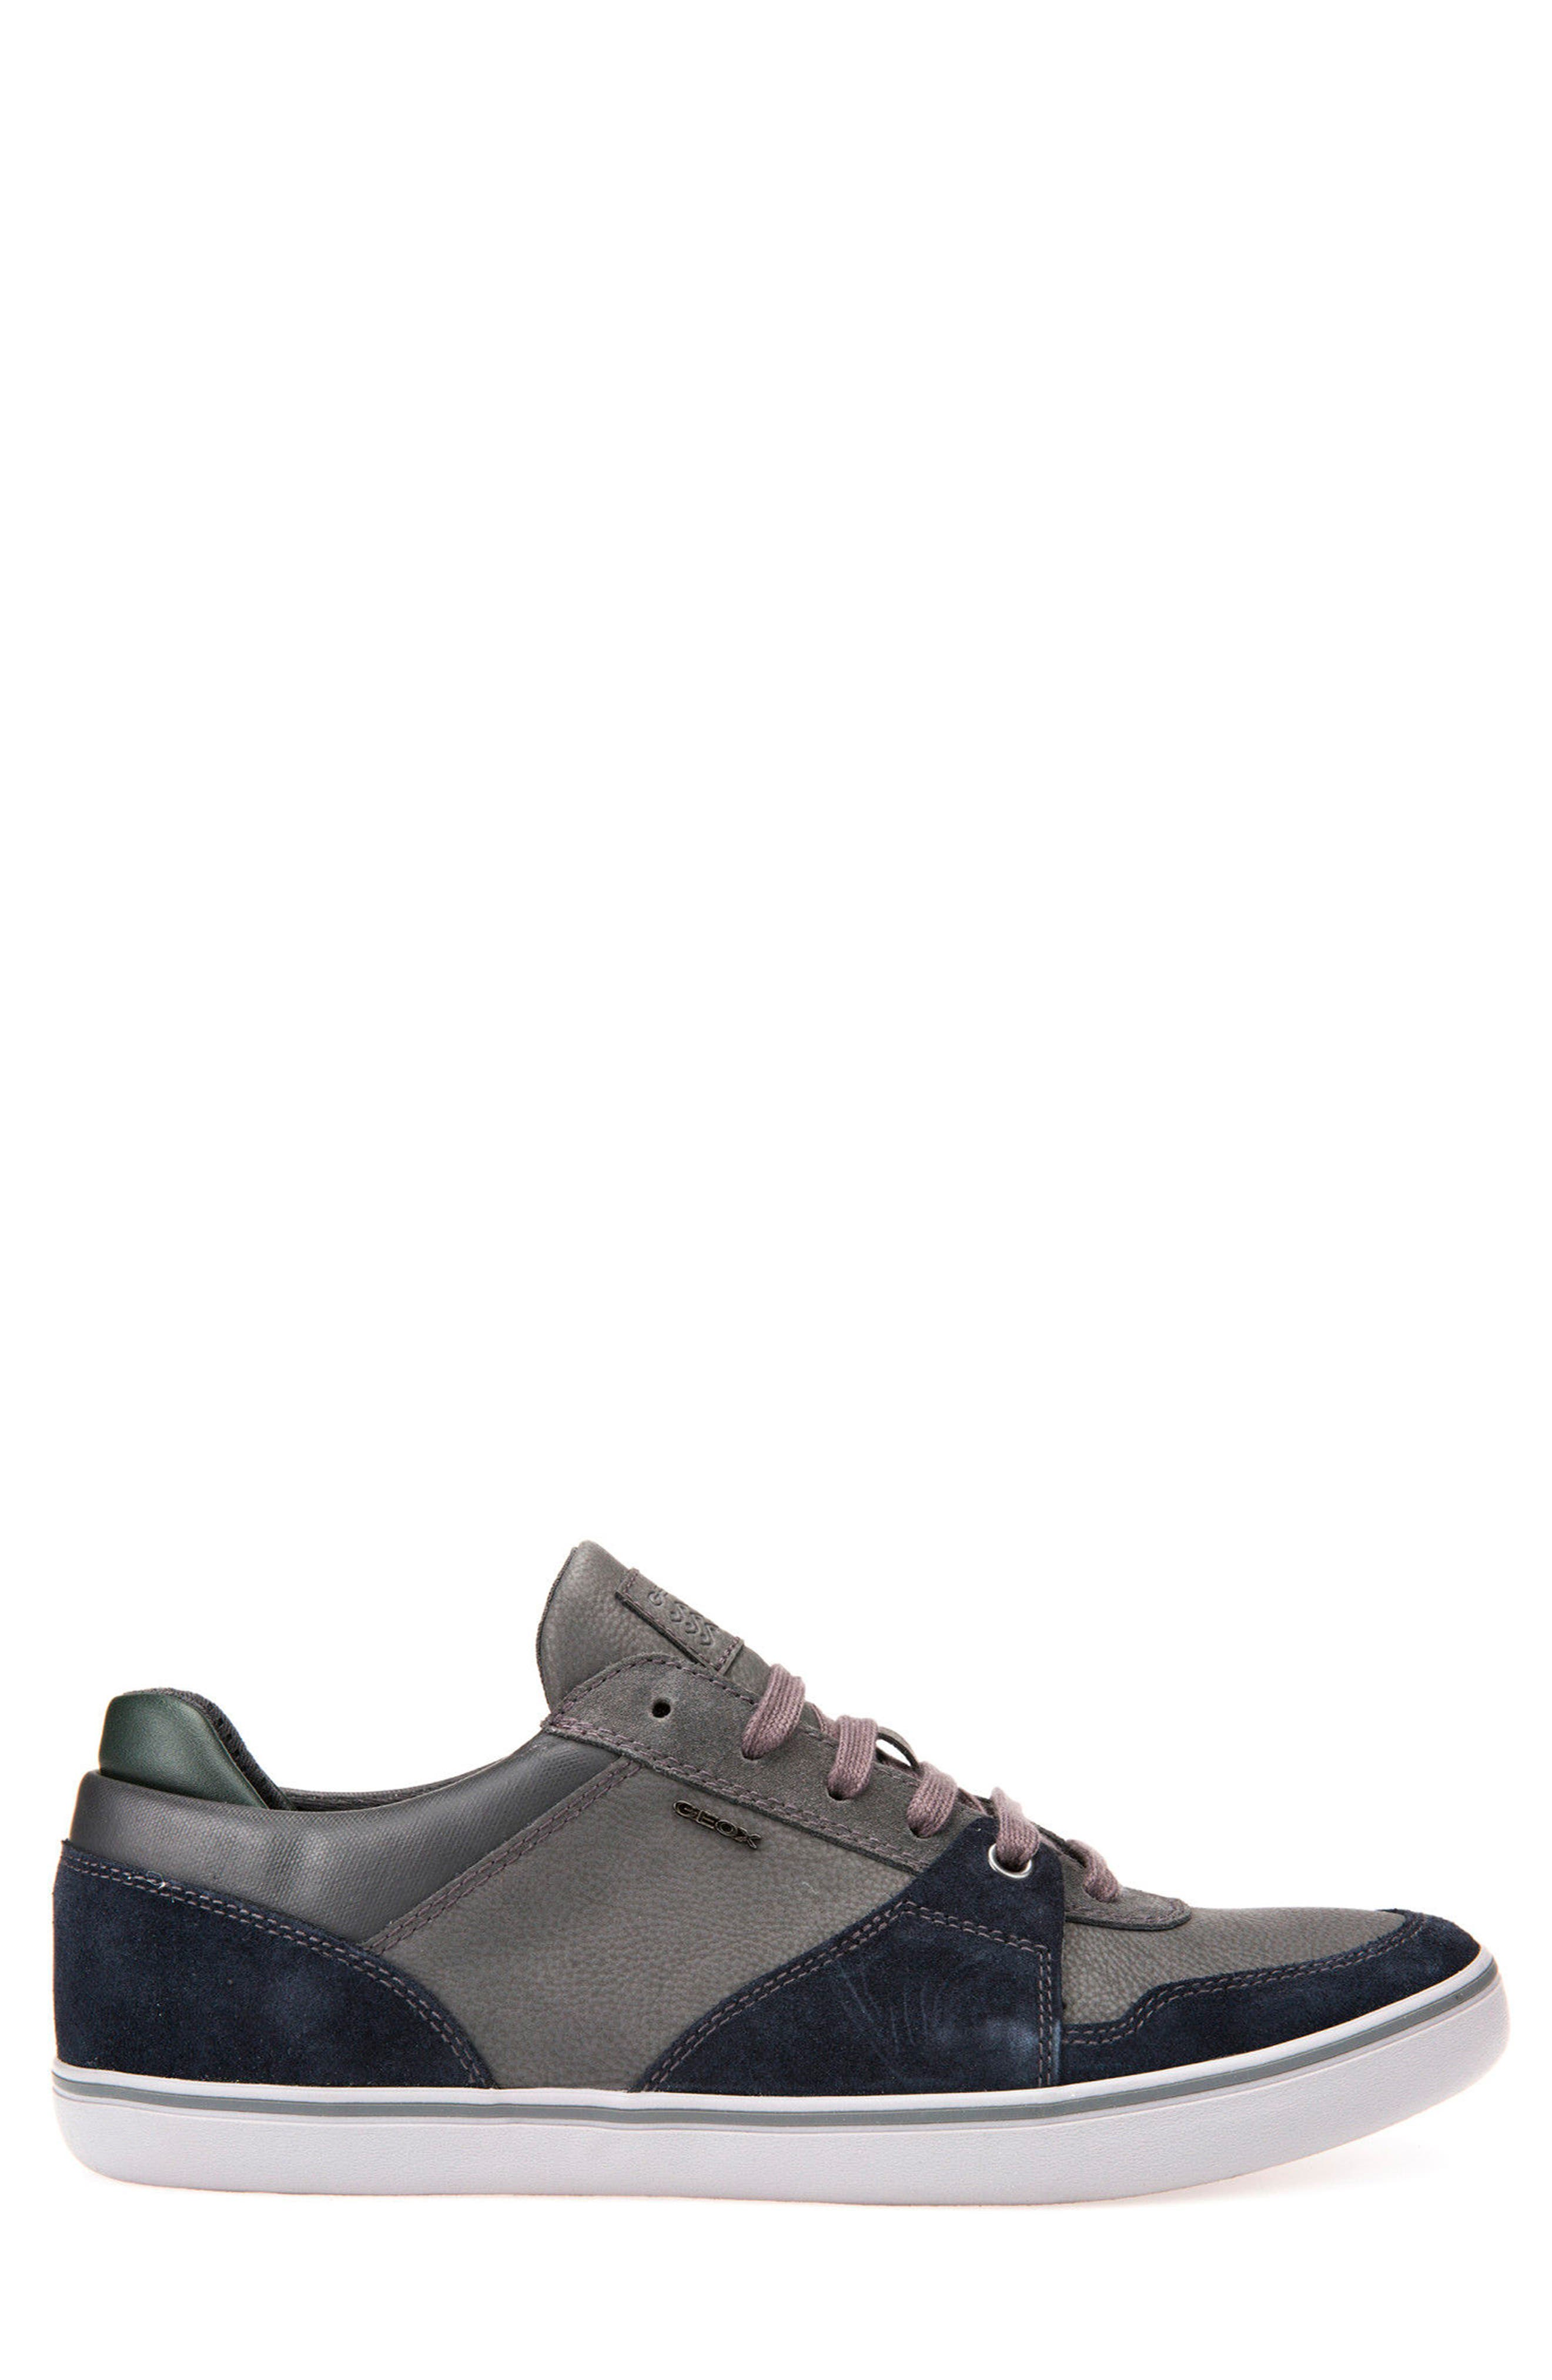 Box 26 Low Top Sneaker,                             Alternate thumbnail 3, color,                             Navy/ Anthracite